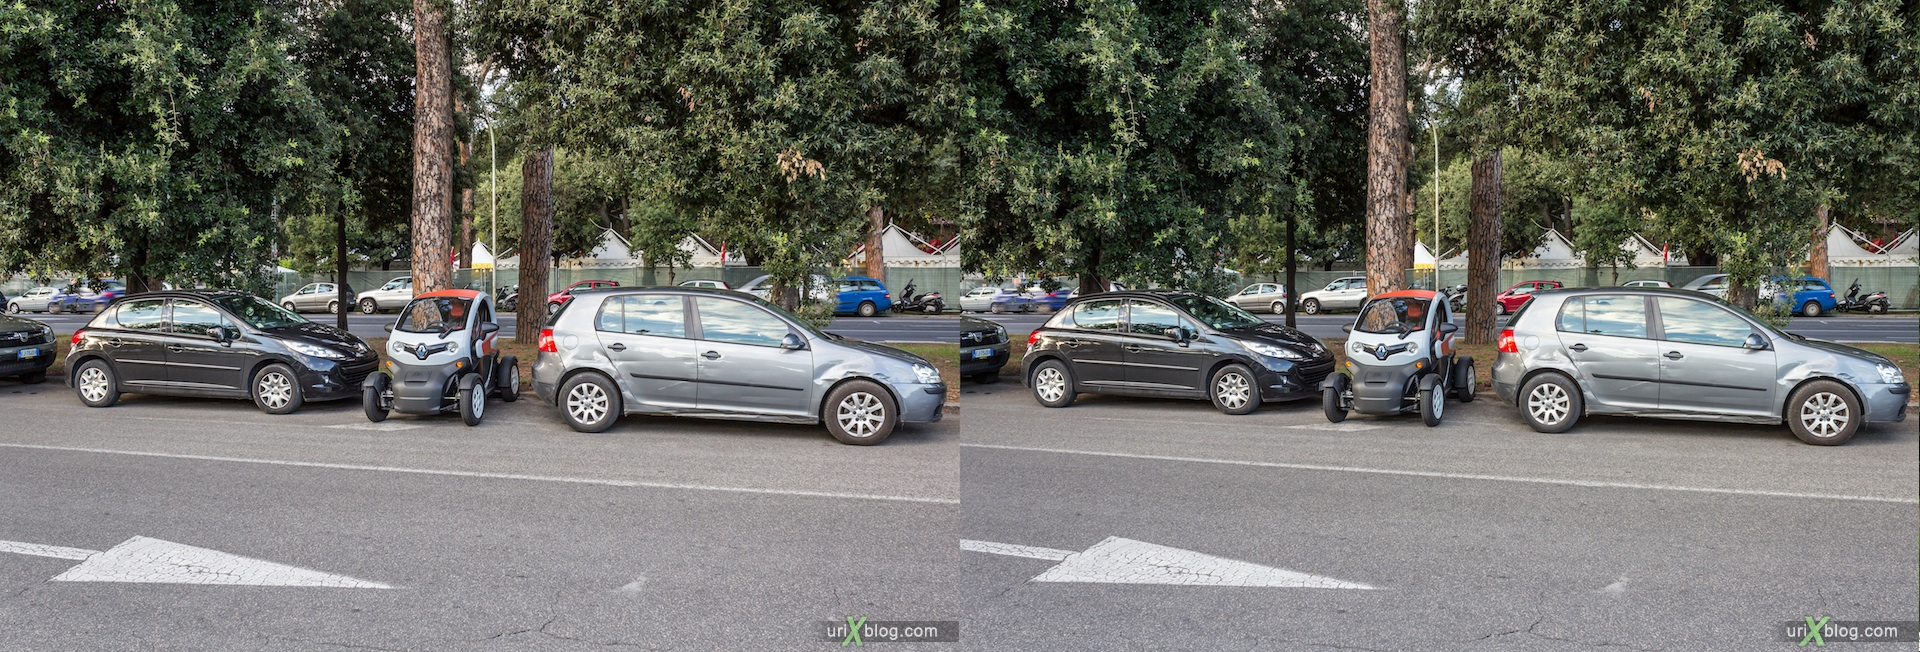 2012, Renault ZE, Baths of Caracalla, Rome, Italy, Europe, 3D, stereo pair, cross-eyed, crossview, cross view stereo pair